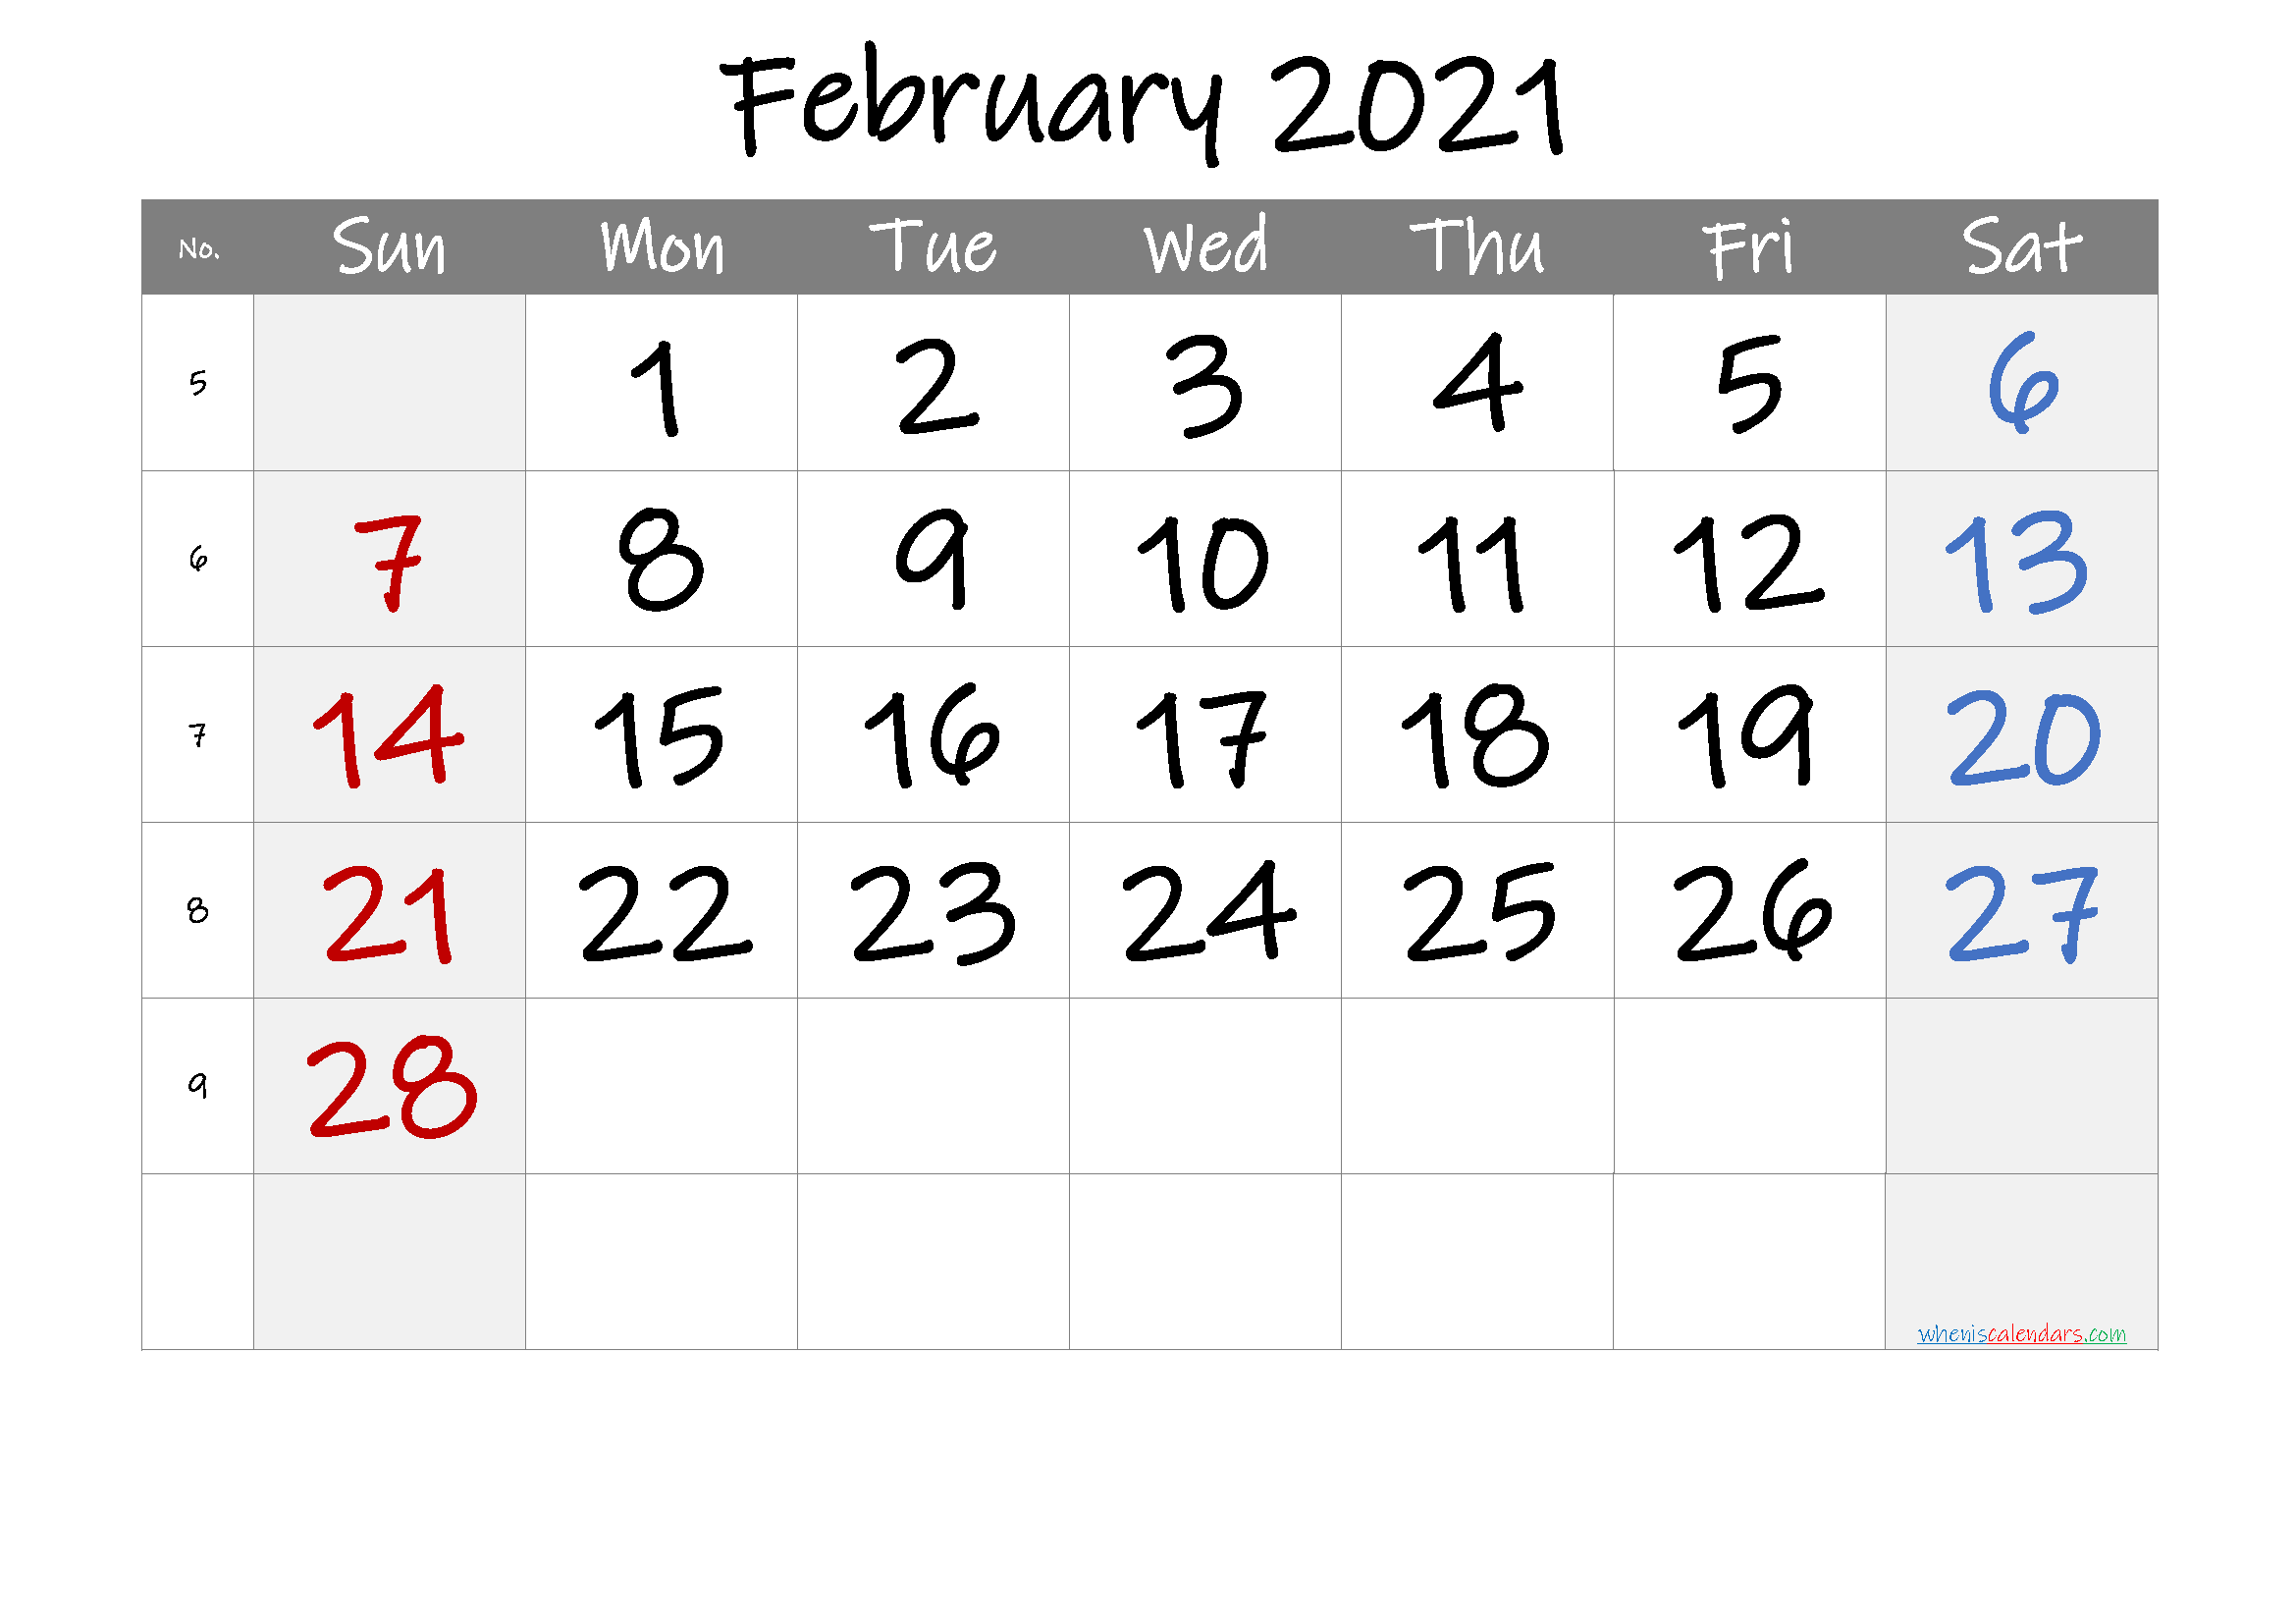 February 2021 Printable Calendar with Week Numbers